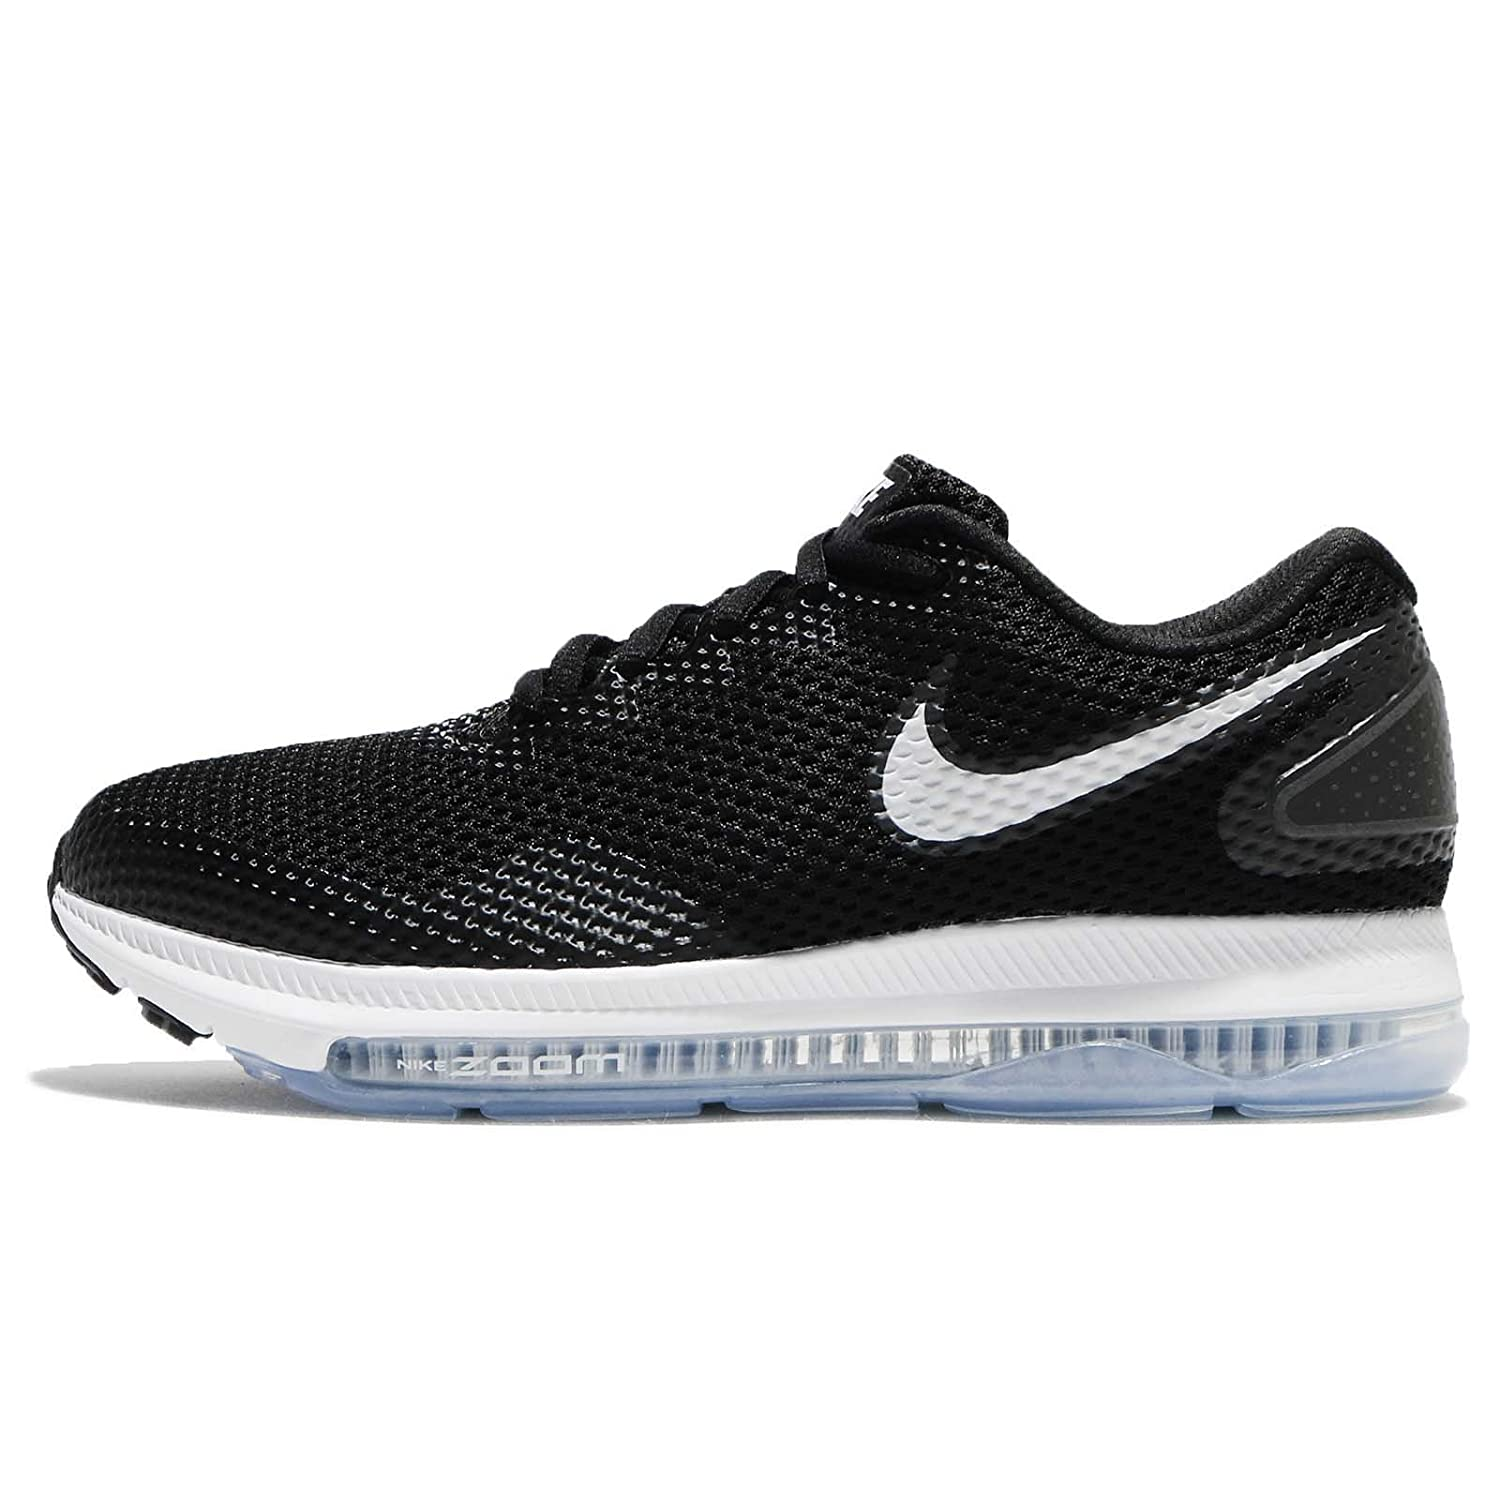 Noir (noir blanc Anthracite 003) Nike W Zoom All Out Low 2, Chaussures de Running Compétition Femme 36.5 EU